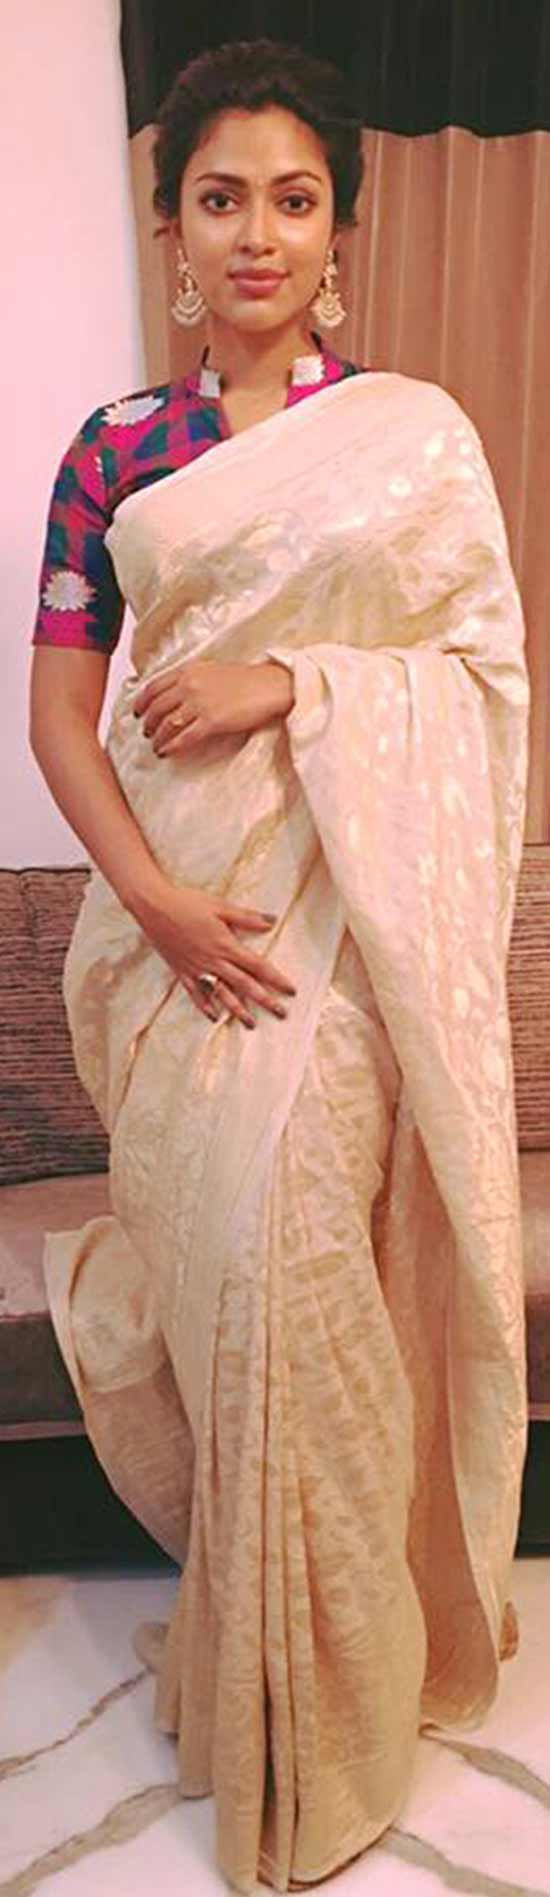 Amala Paul In a pearl white banaras saree with checked multi colored blouse